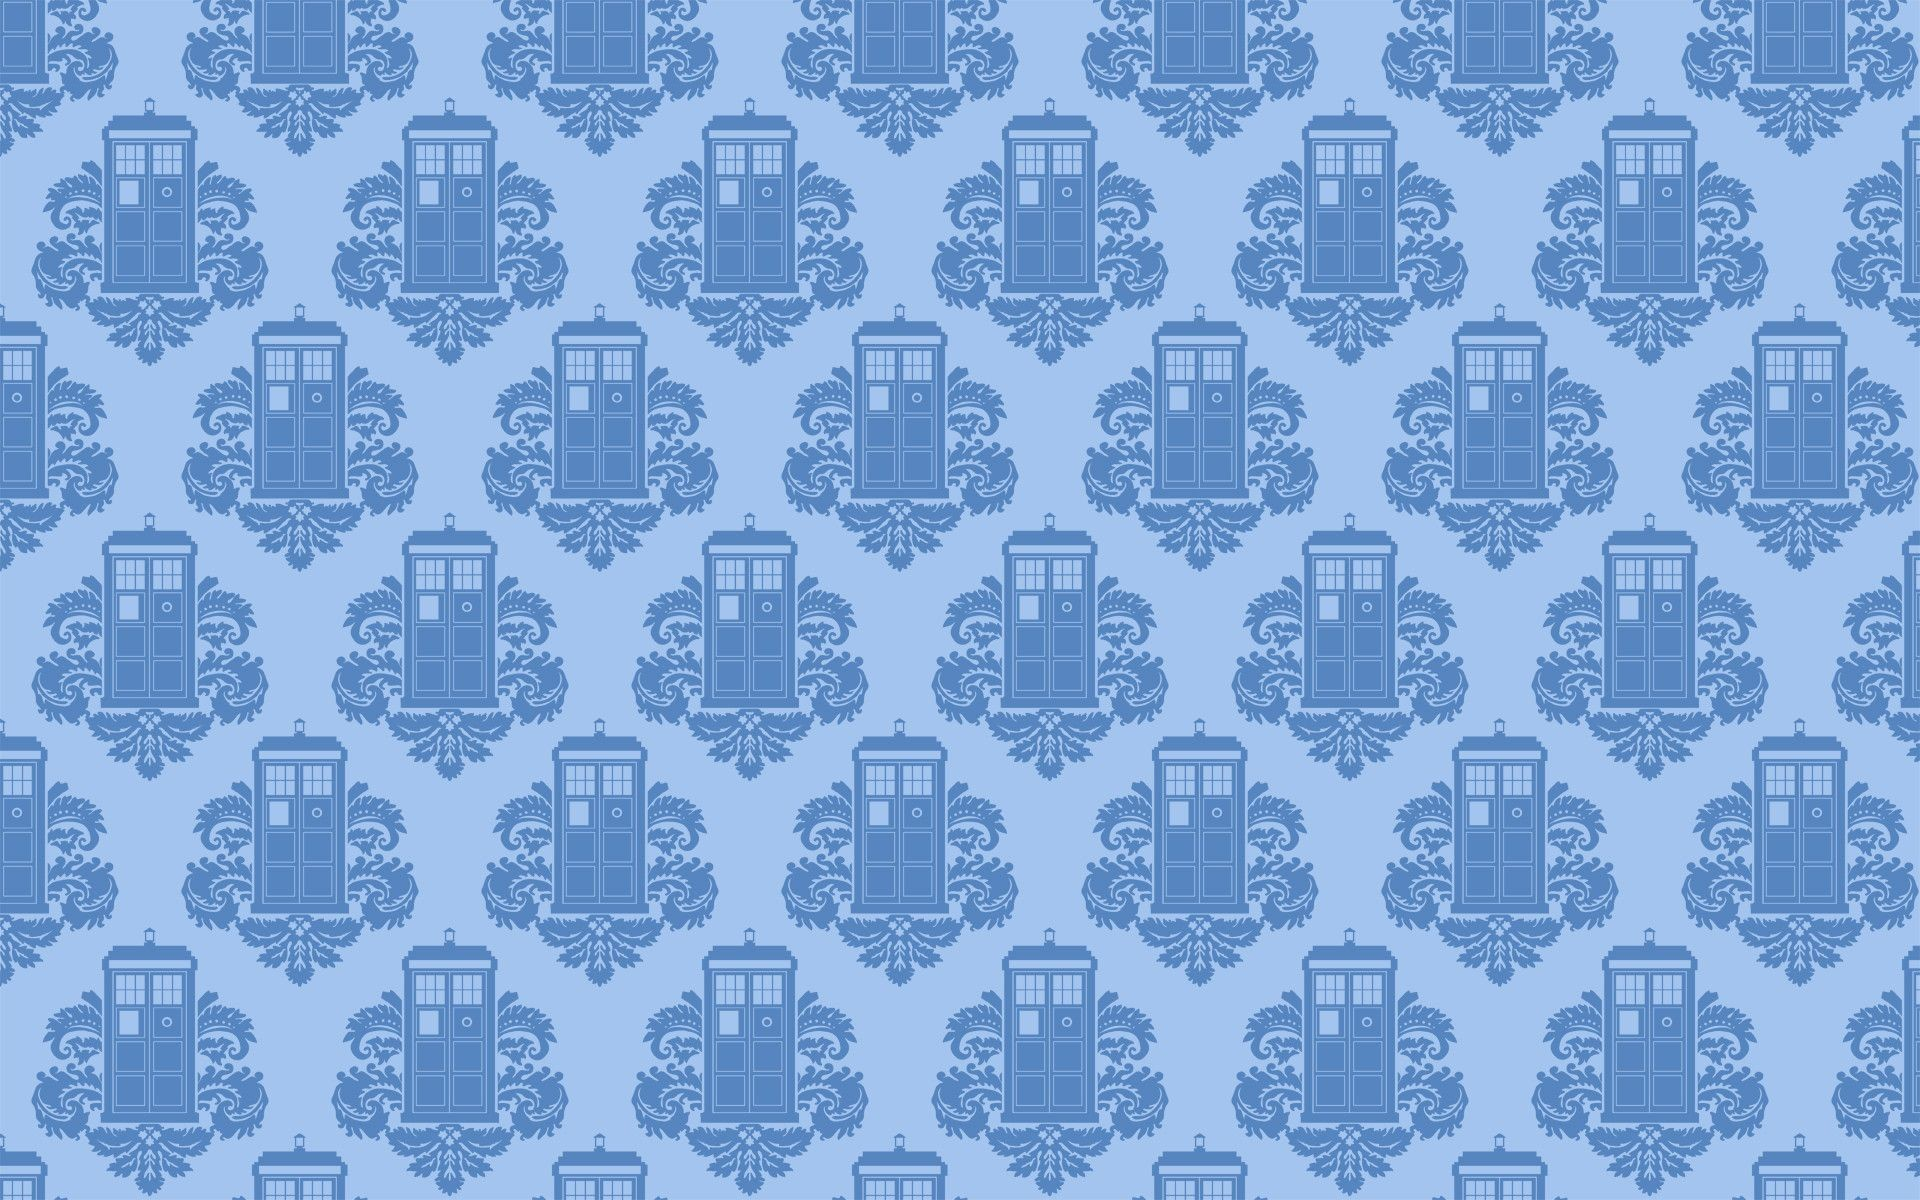 Dr Who Desktop Wallpapers Wallpapers) – Adorable Wallpapers